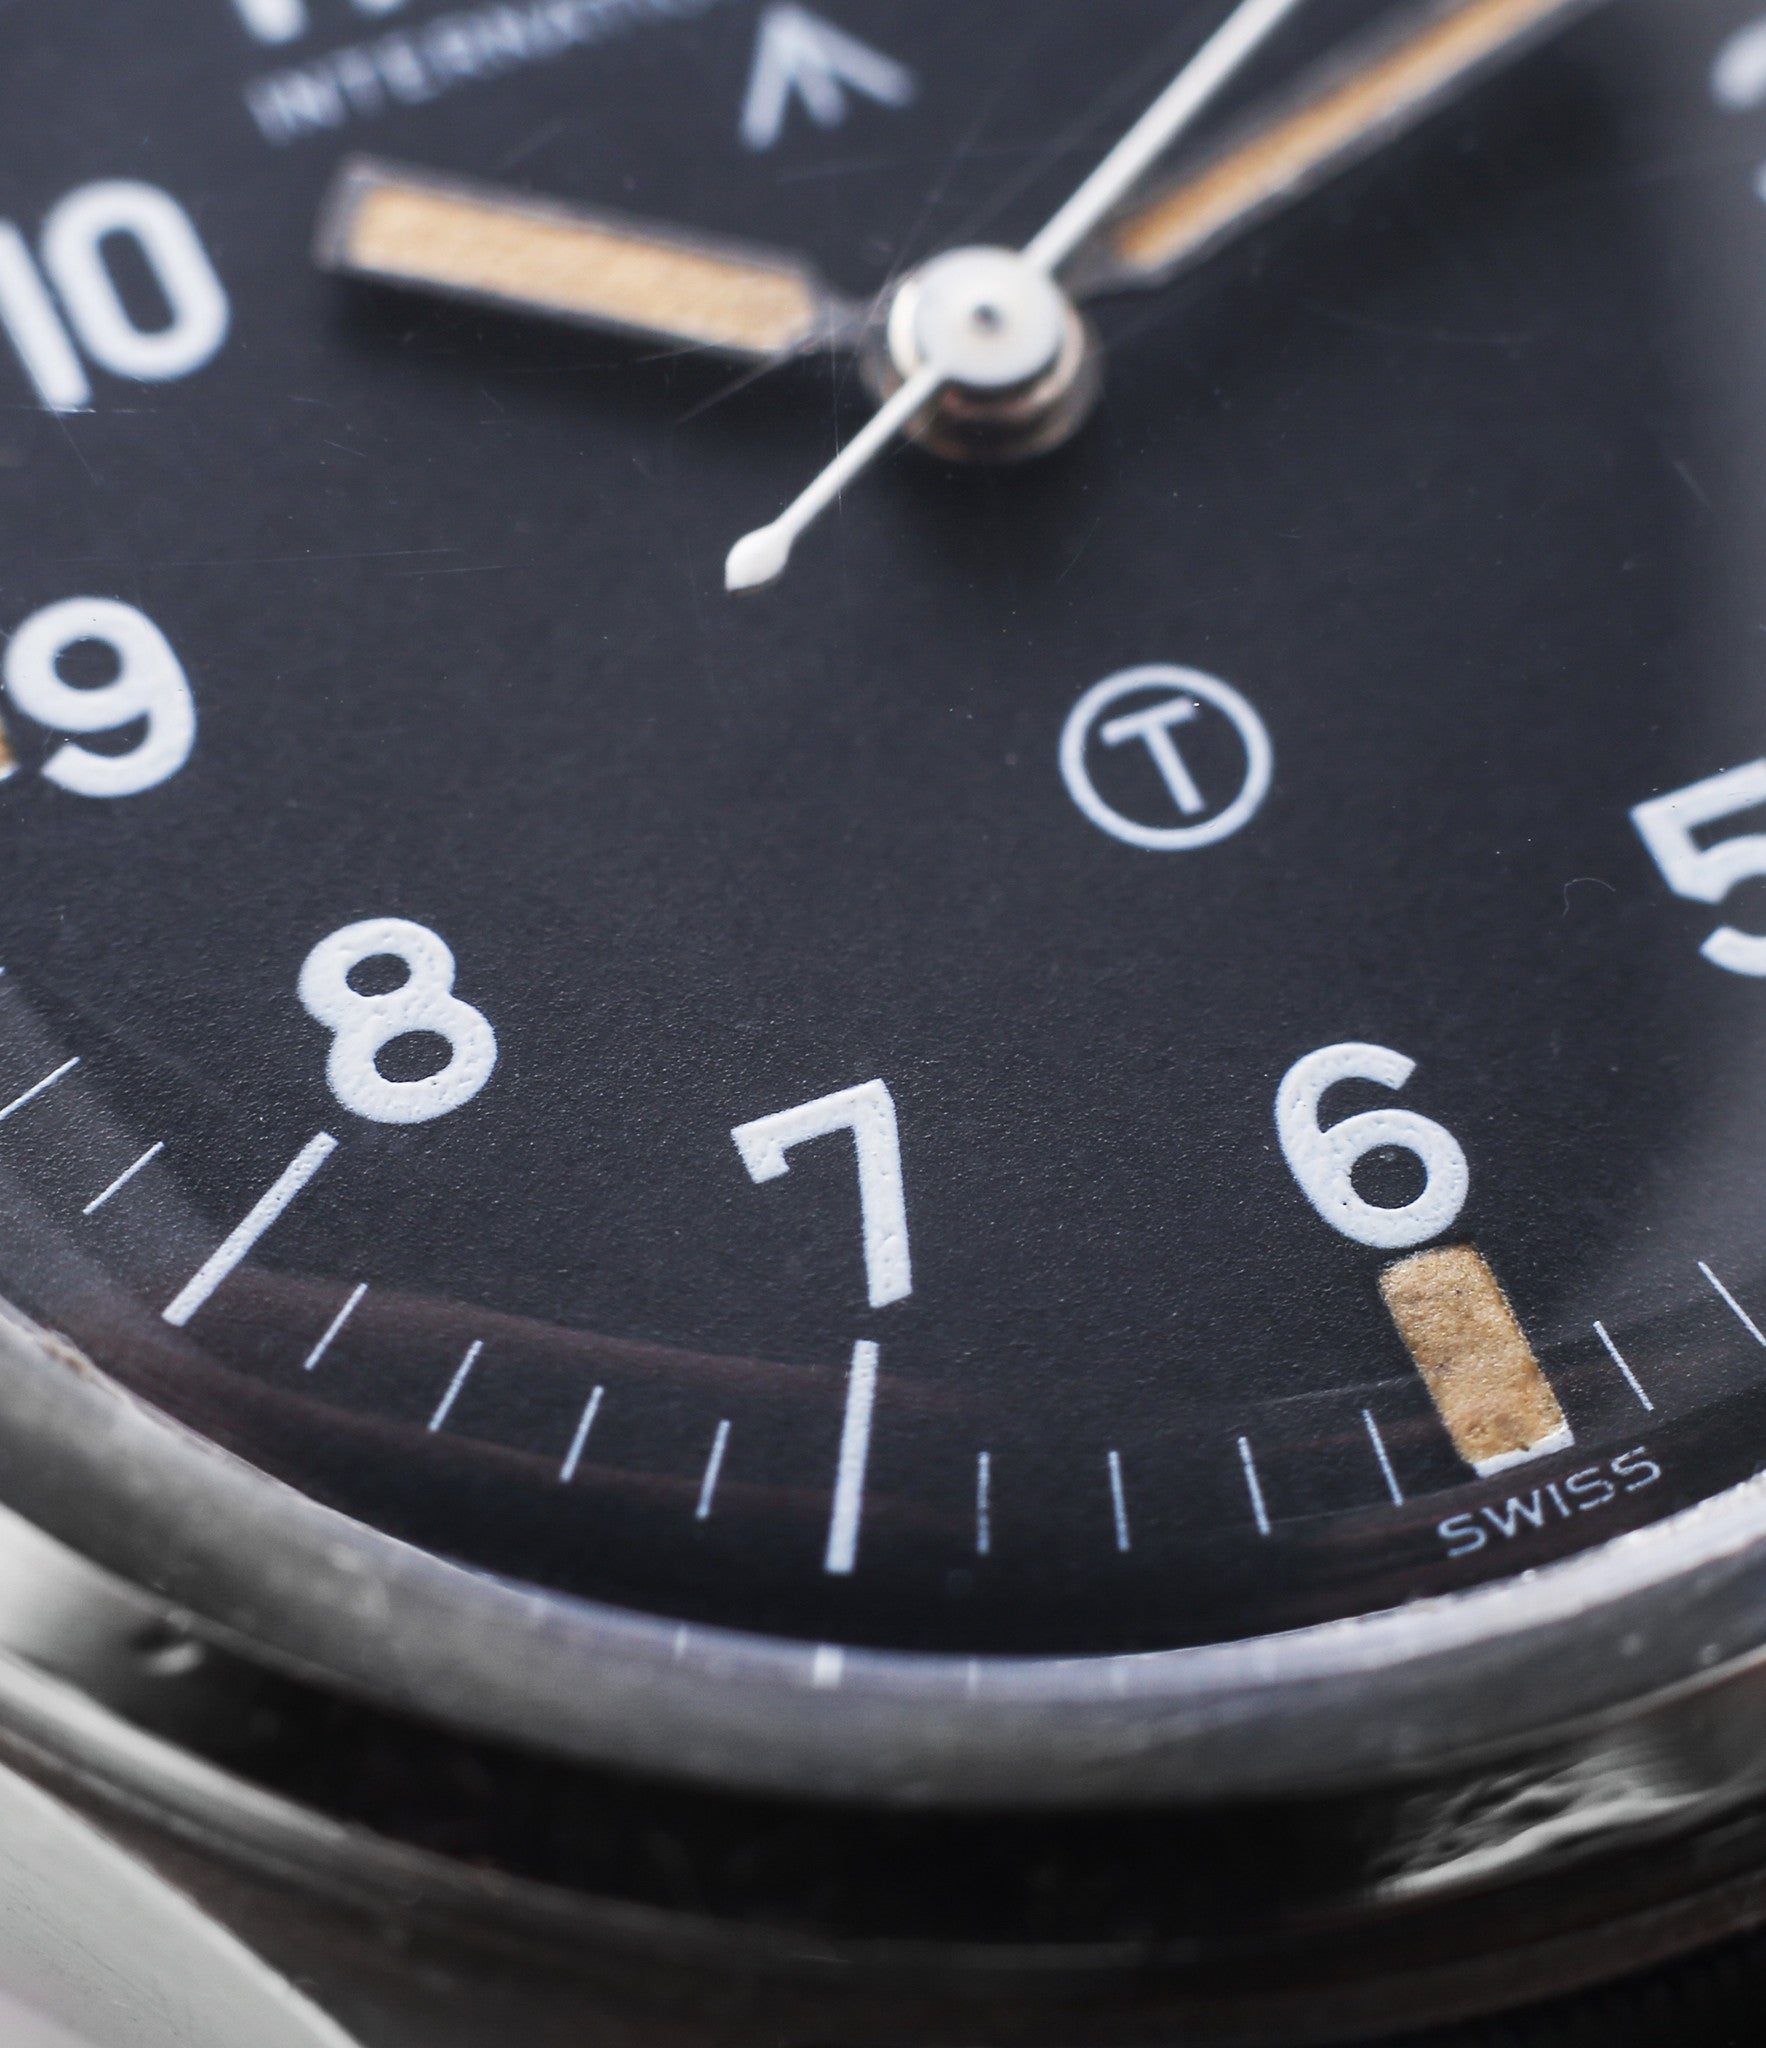 buy military IWC Mark XI 6B/346 steel black dial vintage watch at WATCH XCHANGE London for sale online